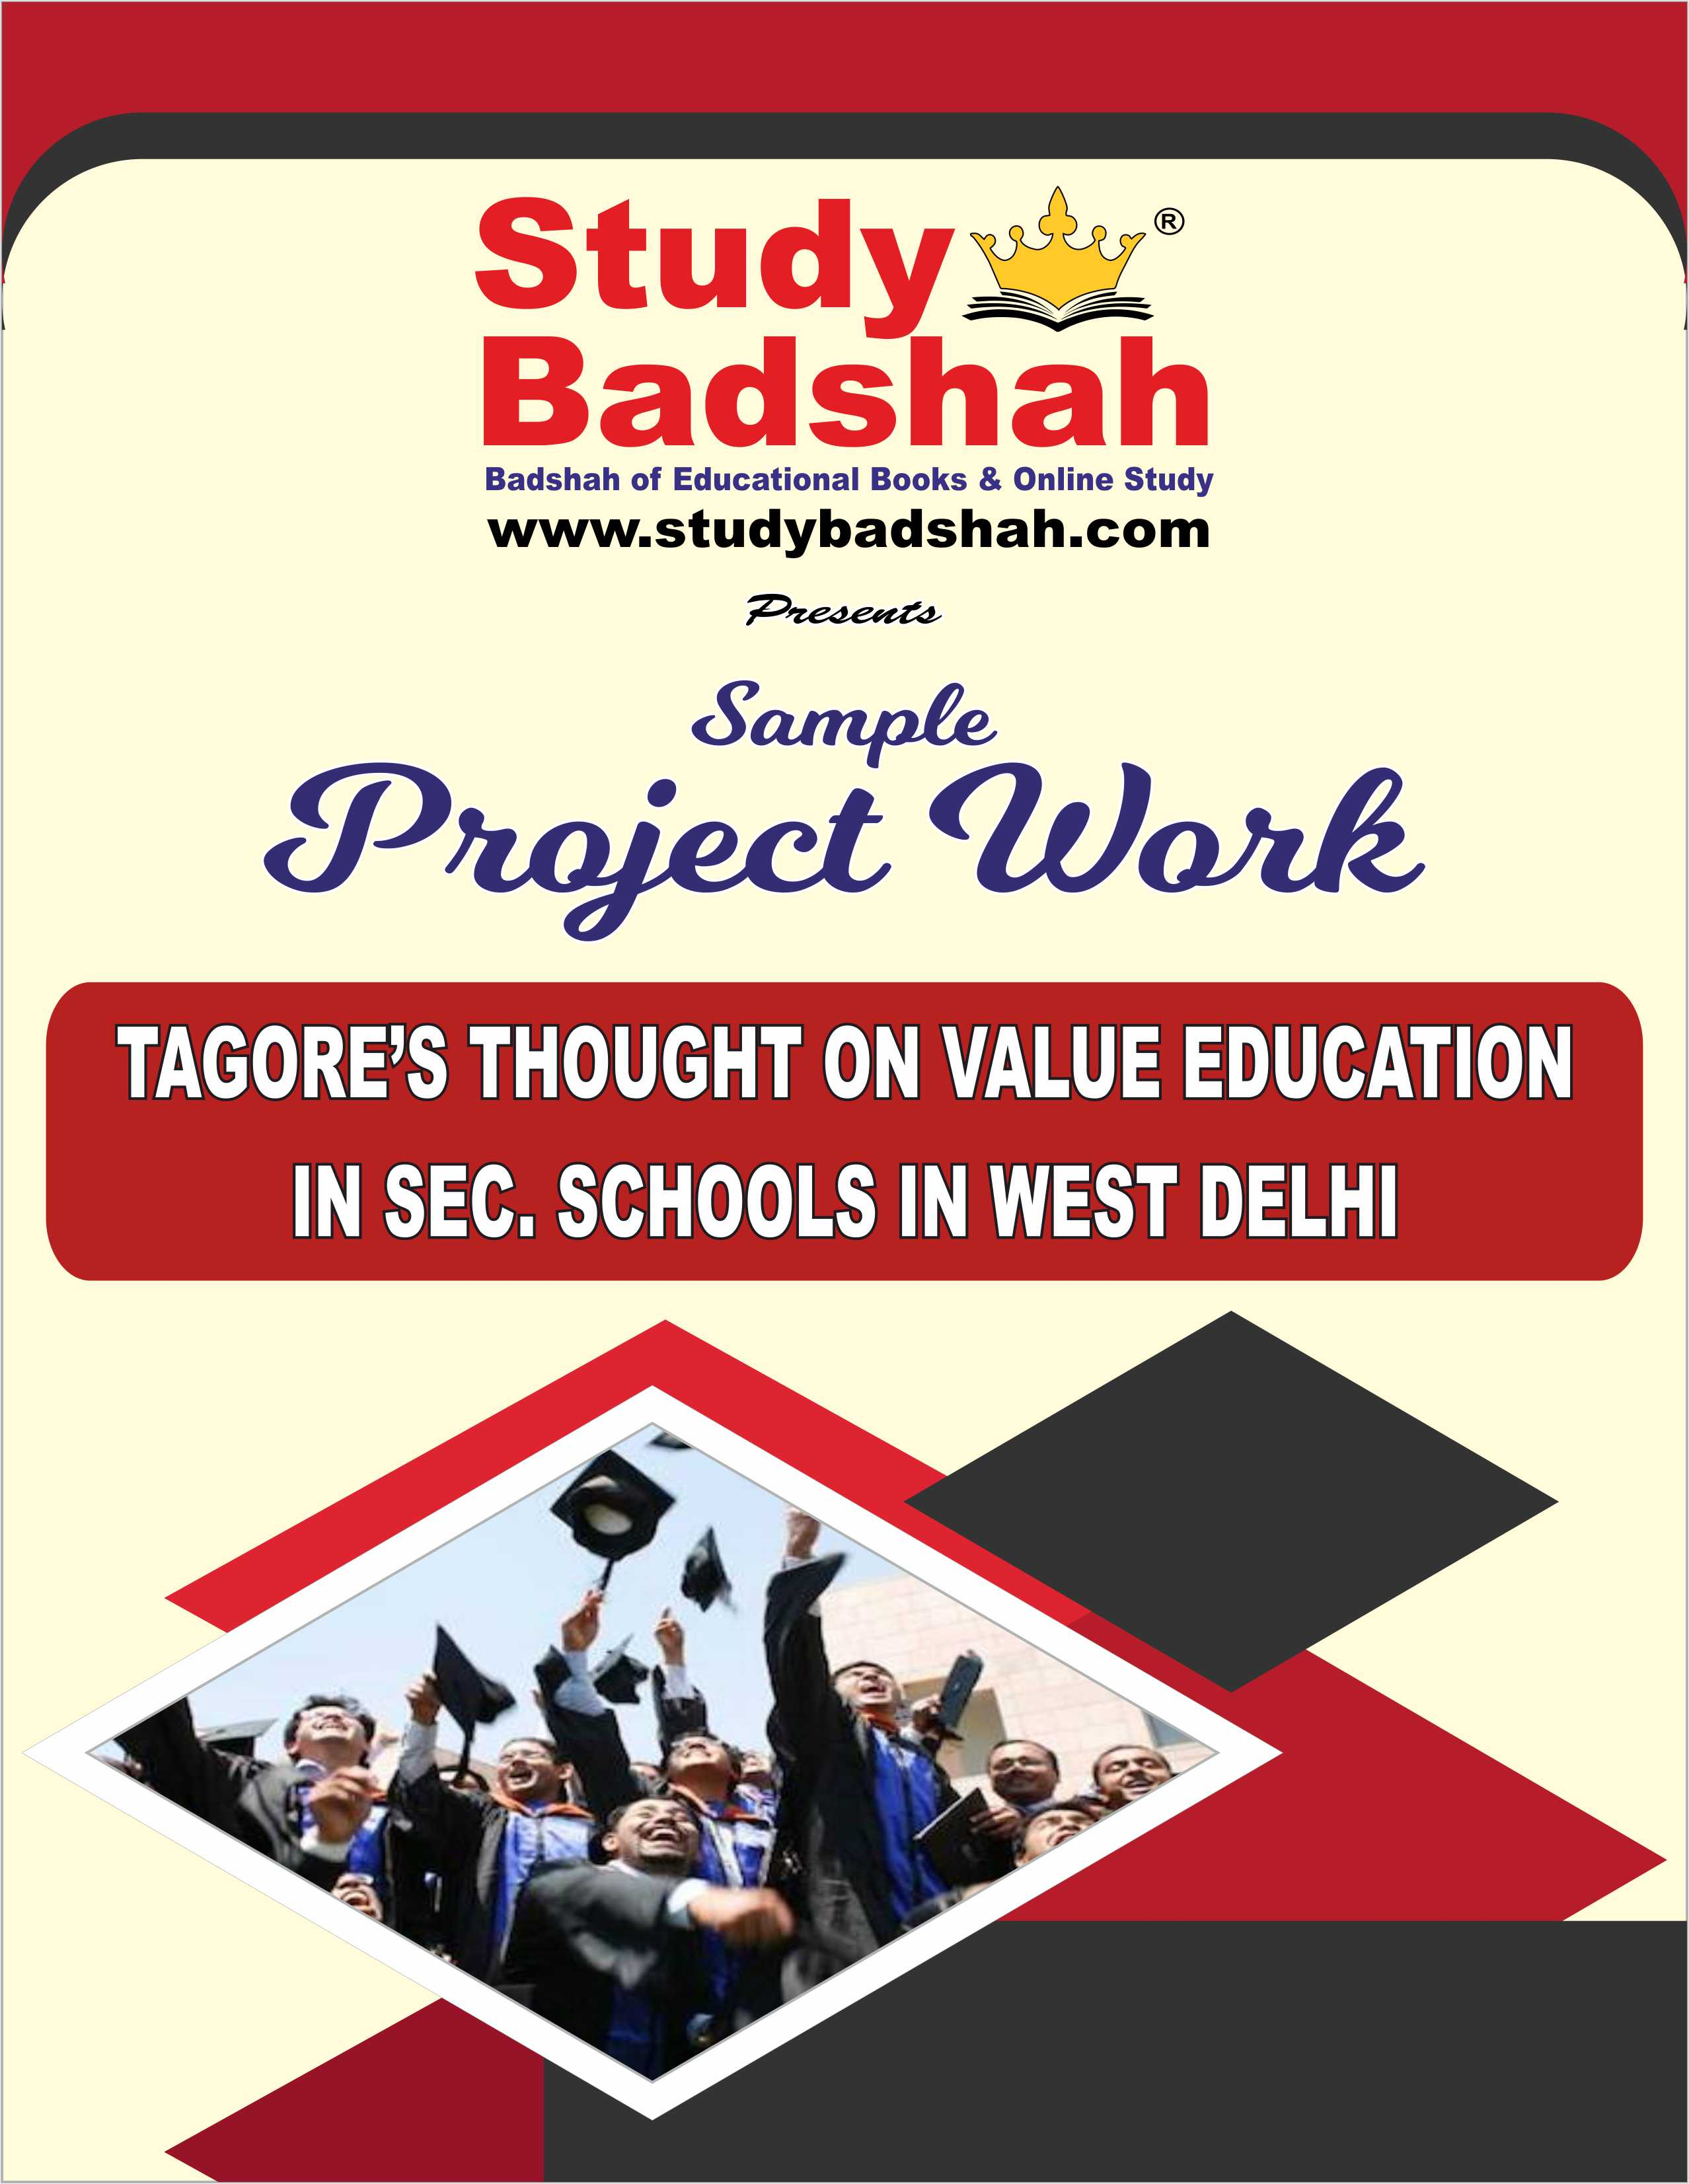 TAGORE'S THOUGHT ON VALUE EDUCATION IN SEC. SCHOOLS IN WEST DELHI